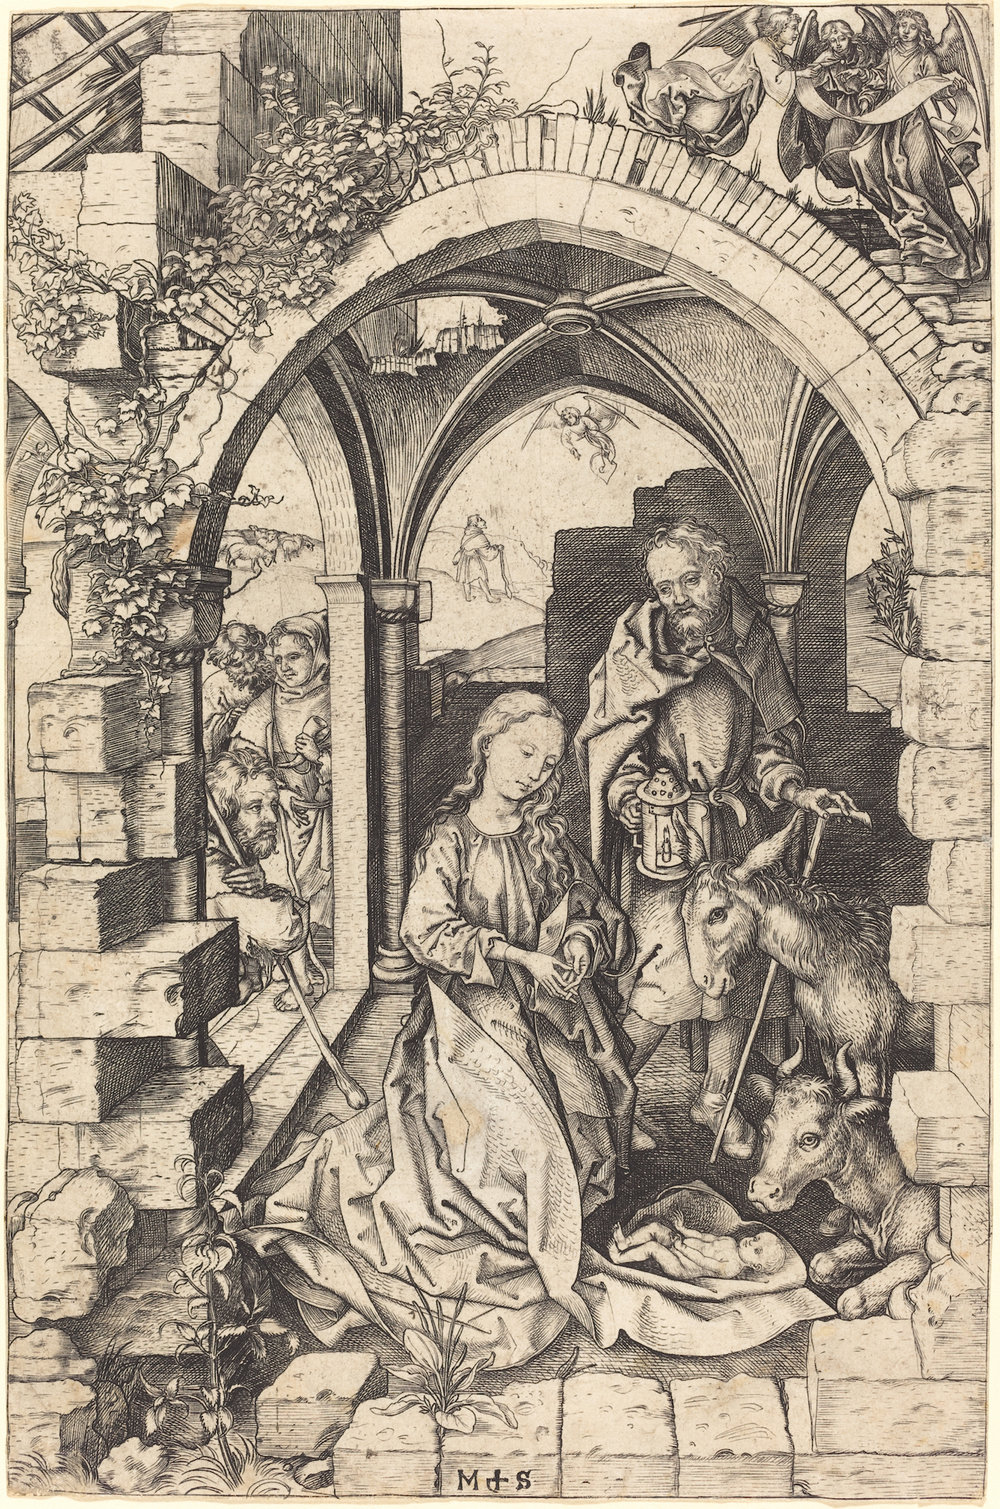 Martin Schongauer (German, c. 1450–91), The Nativity. From the collection of the National Gallery of Art, Washington.